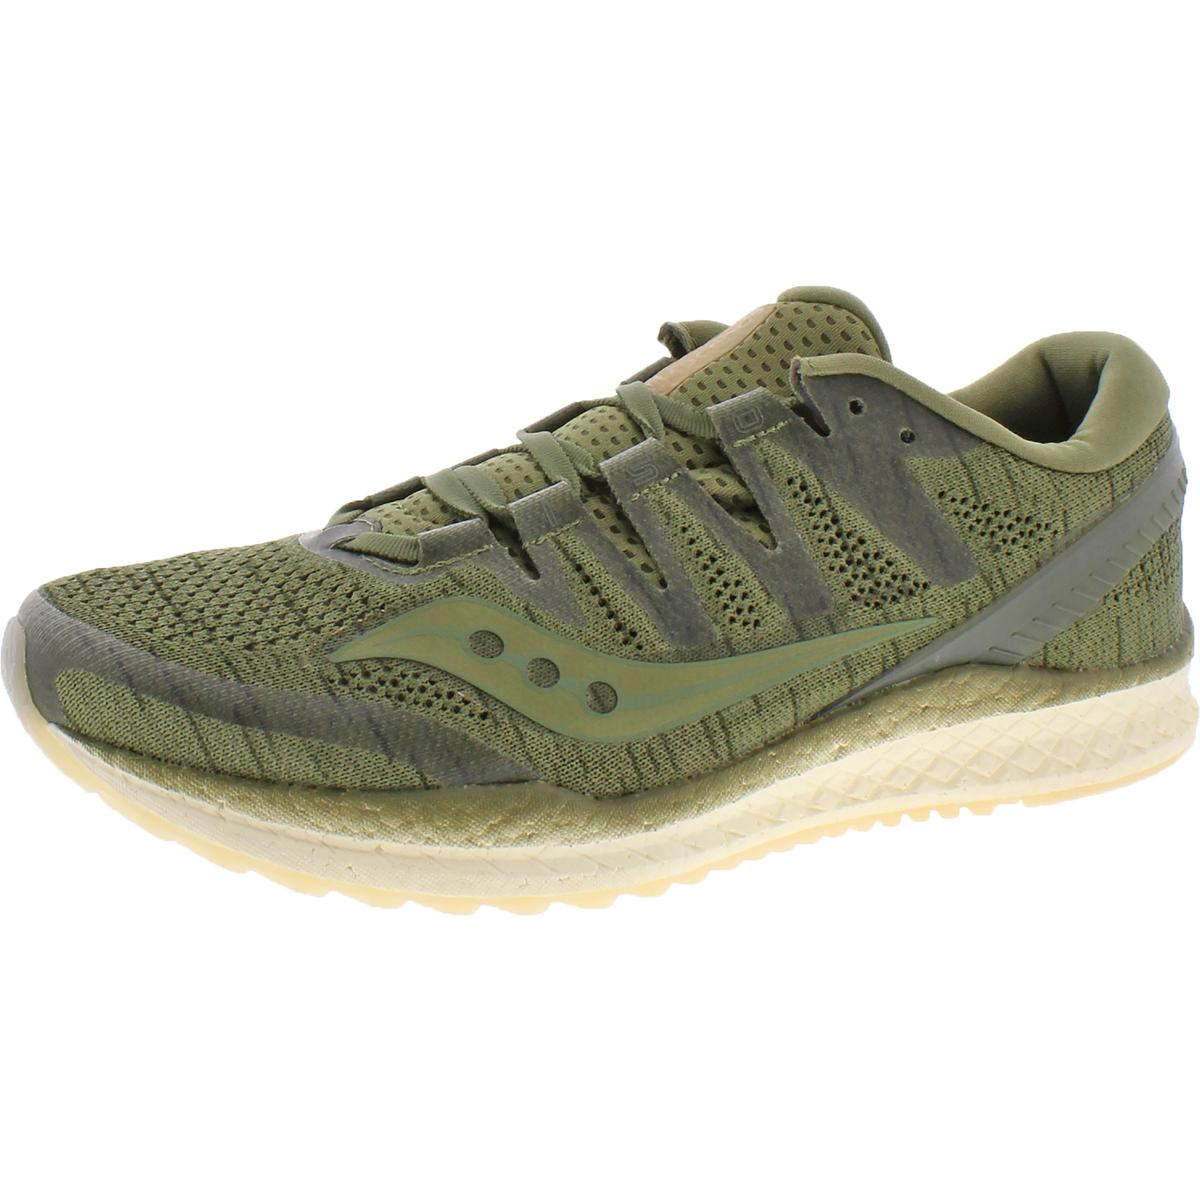 Saucony Mens Grid Web Mesh Padded Insole Trainer Sneakers Shoes BHFO 8143